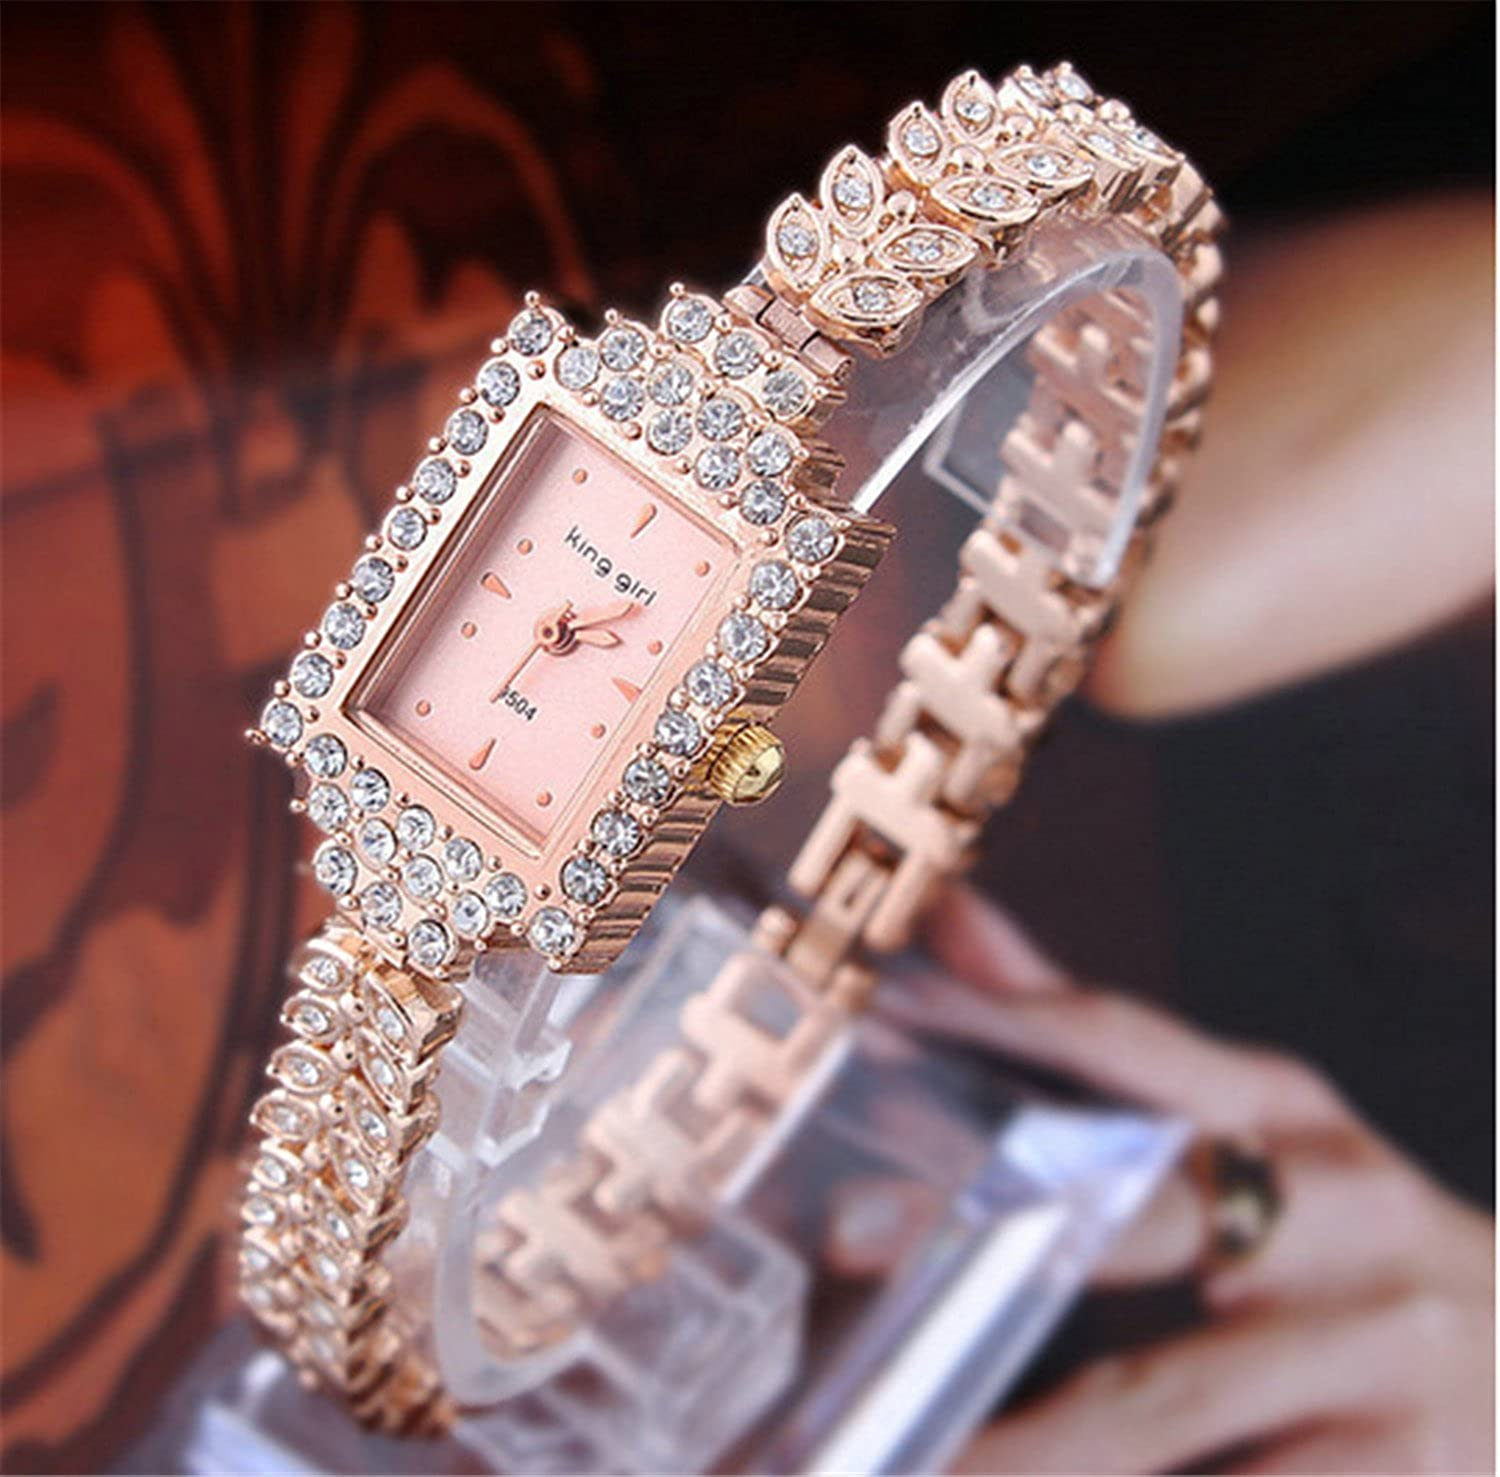 Amazon.com: COCOTINA Brand New Lady Women Quartz Rhinestone Crystal Wrist Watch Square gold surface: Watches